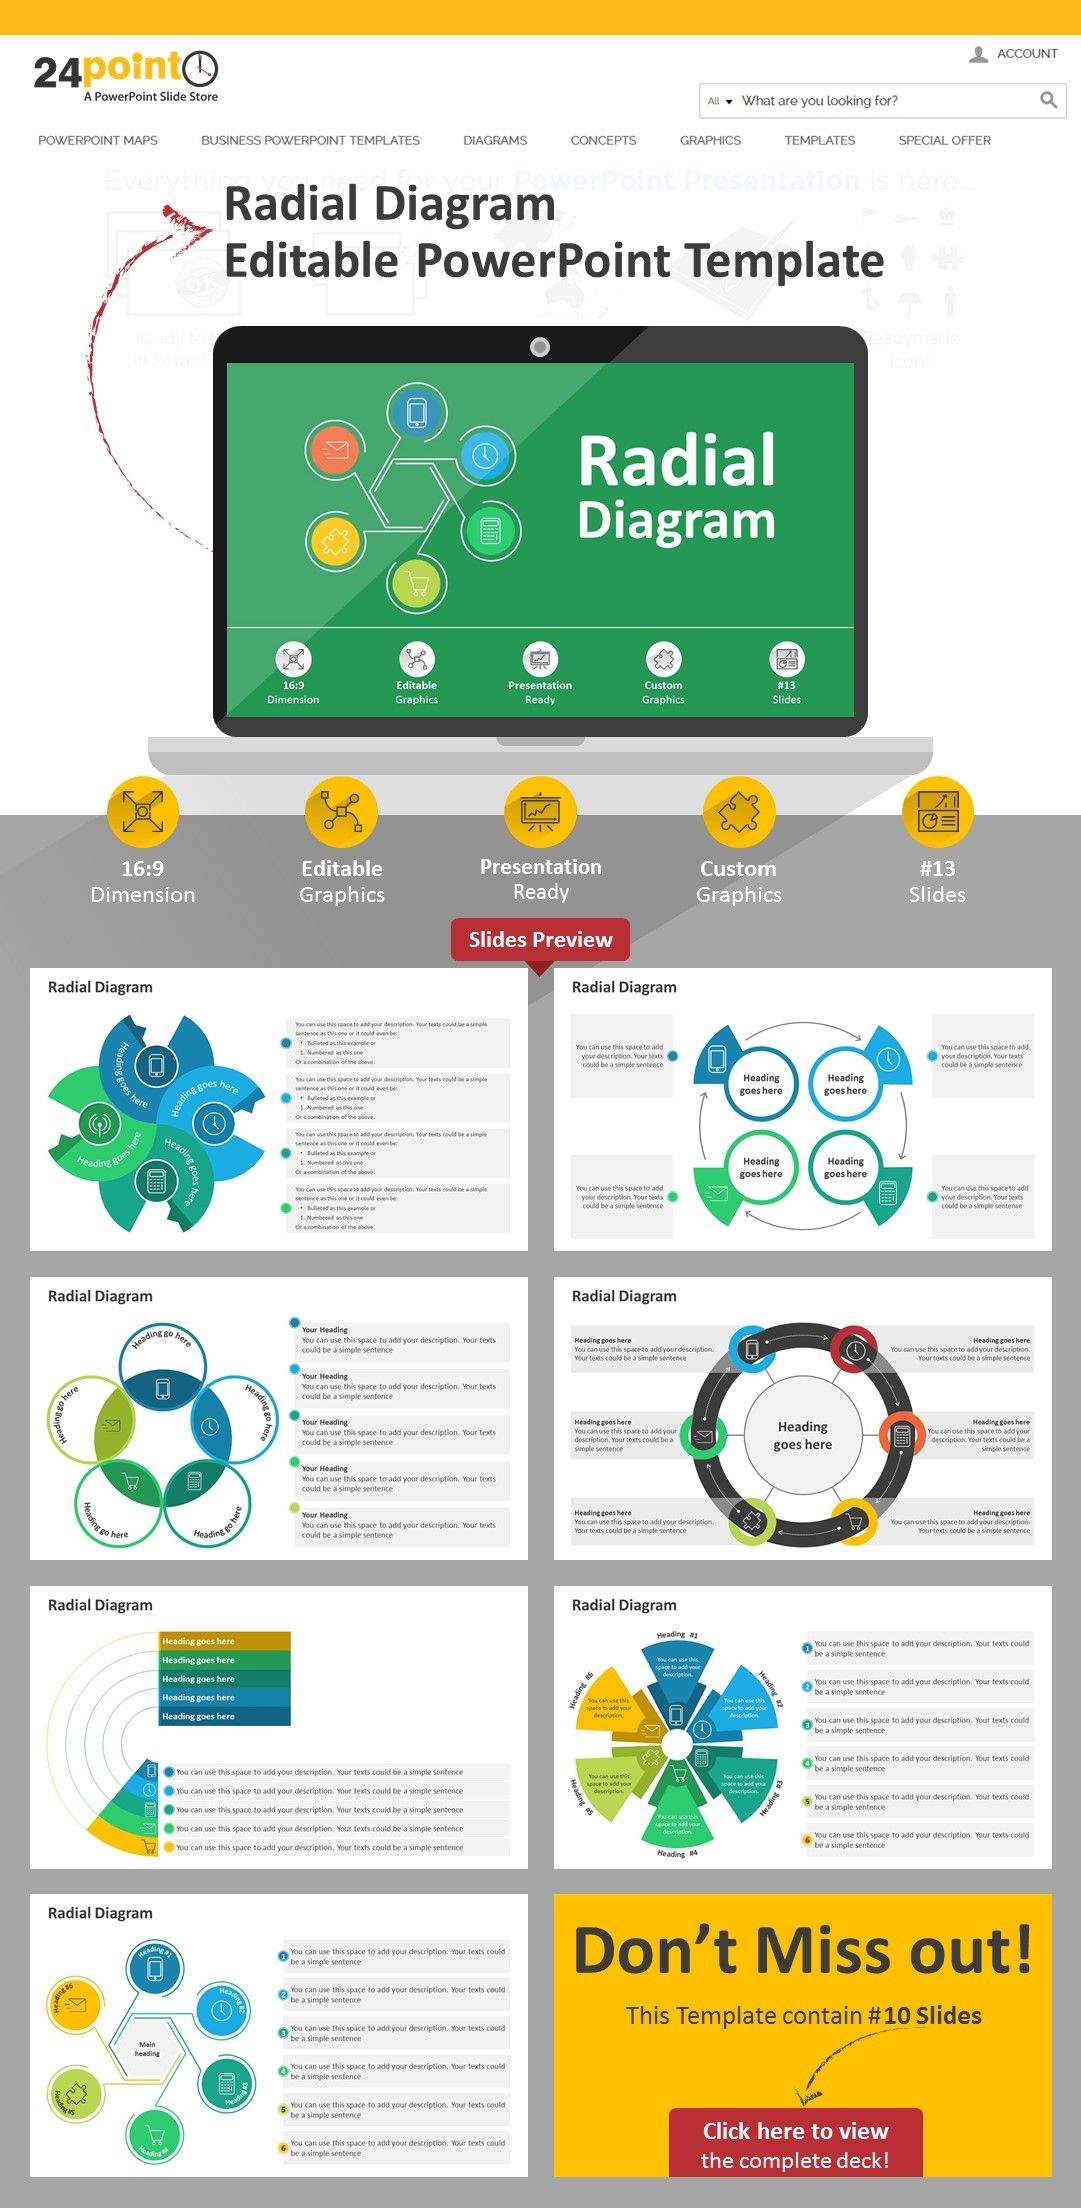 Use this editable radialdiagram powerpoint template to present use this editable powerpoint template to present unlimited business and management ideas the deck contains 13 editable slides of radial diagrams with text toneelgroepblik Gallery